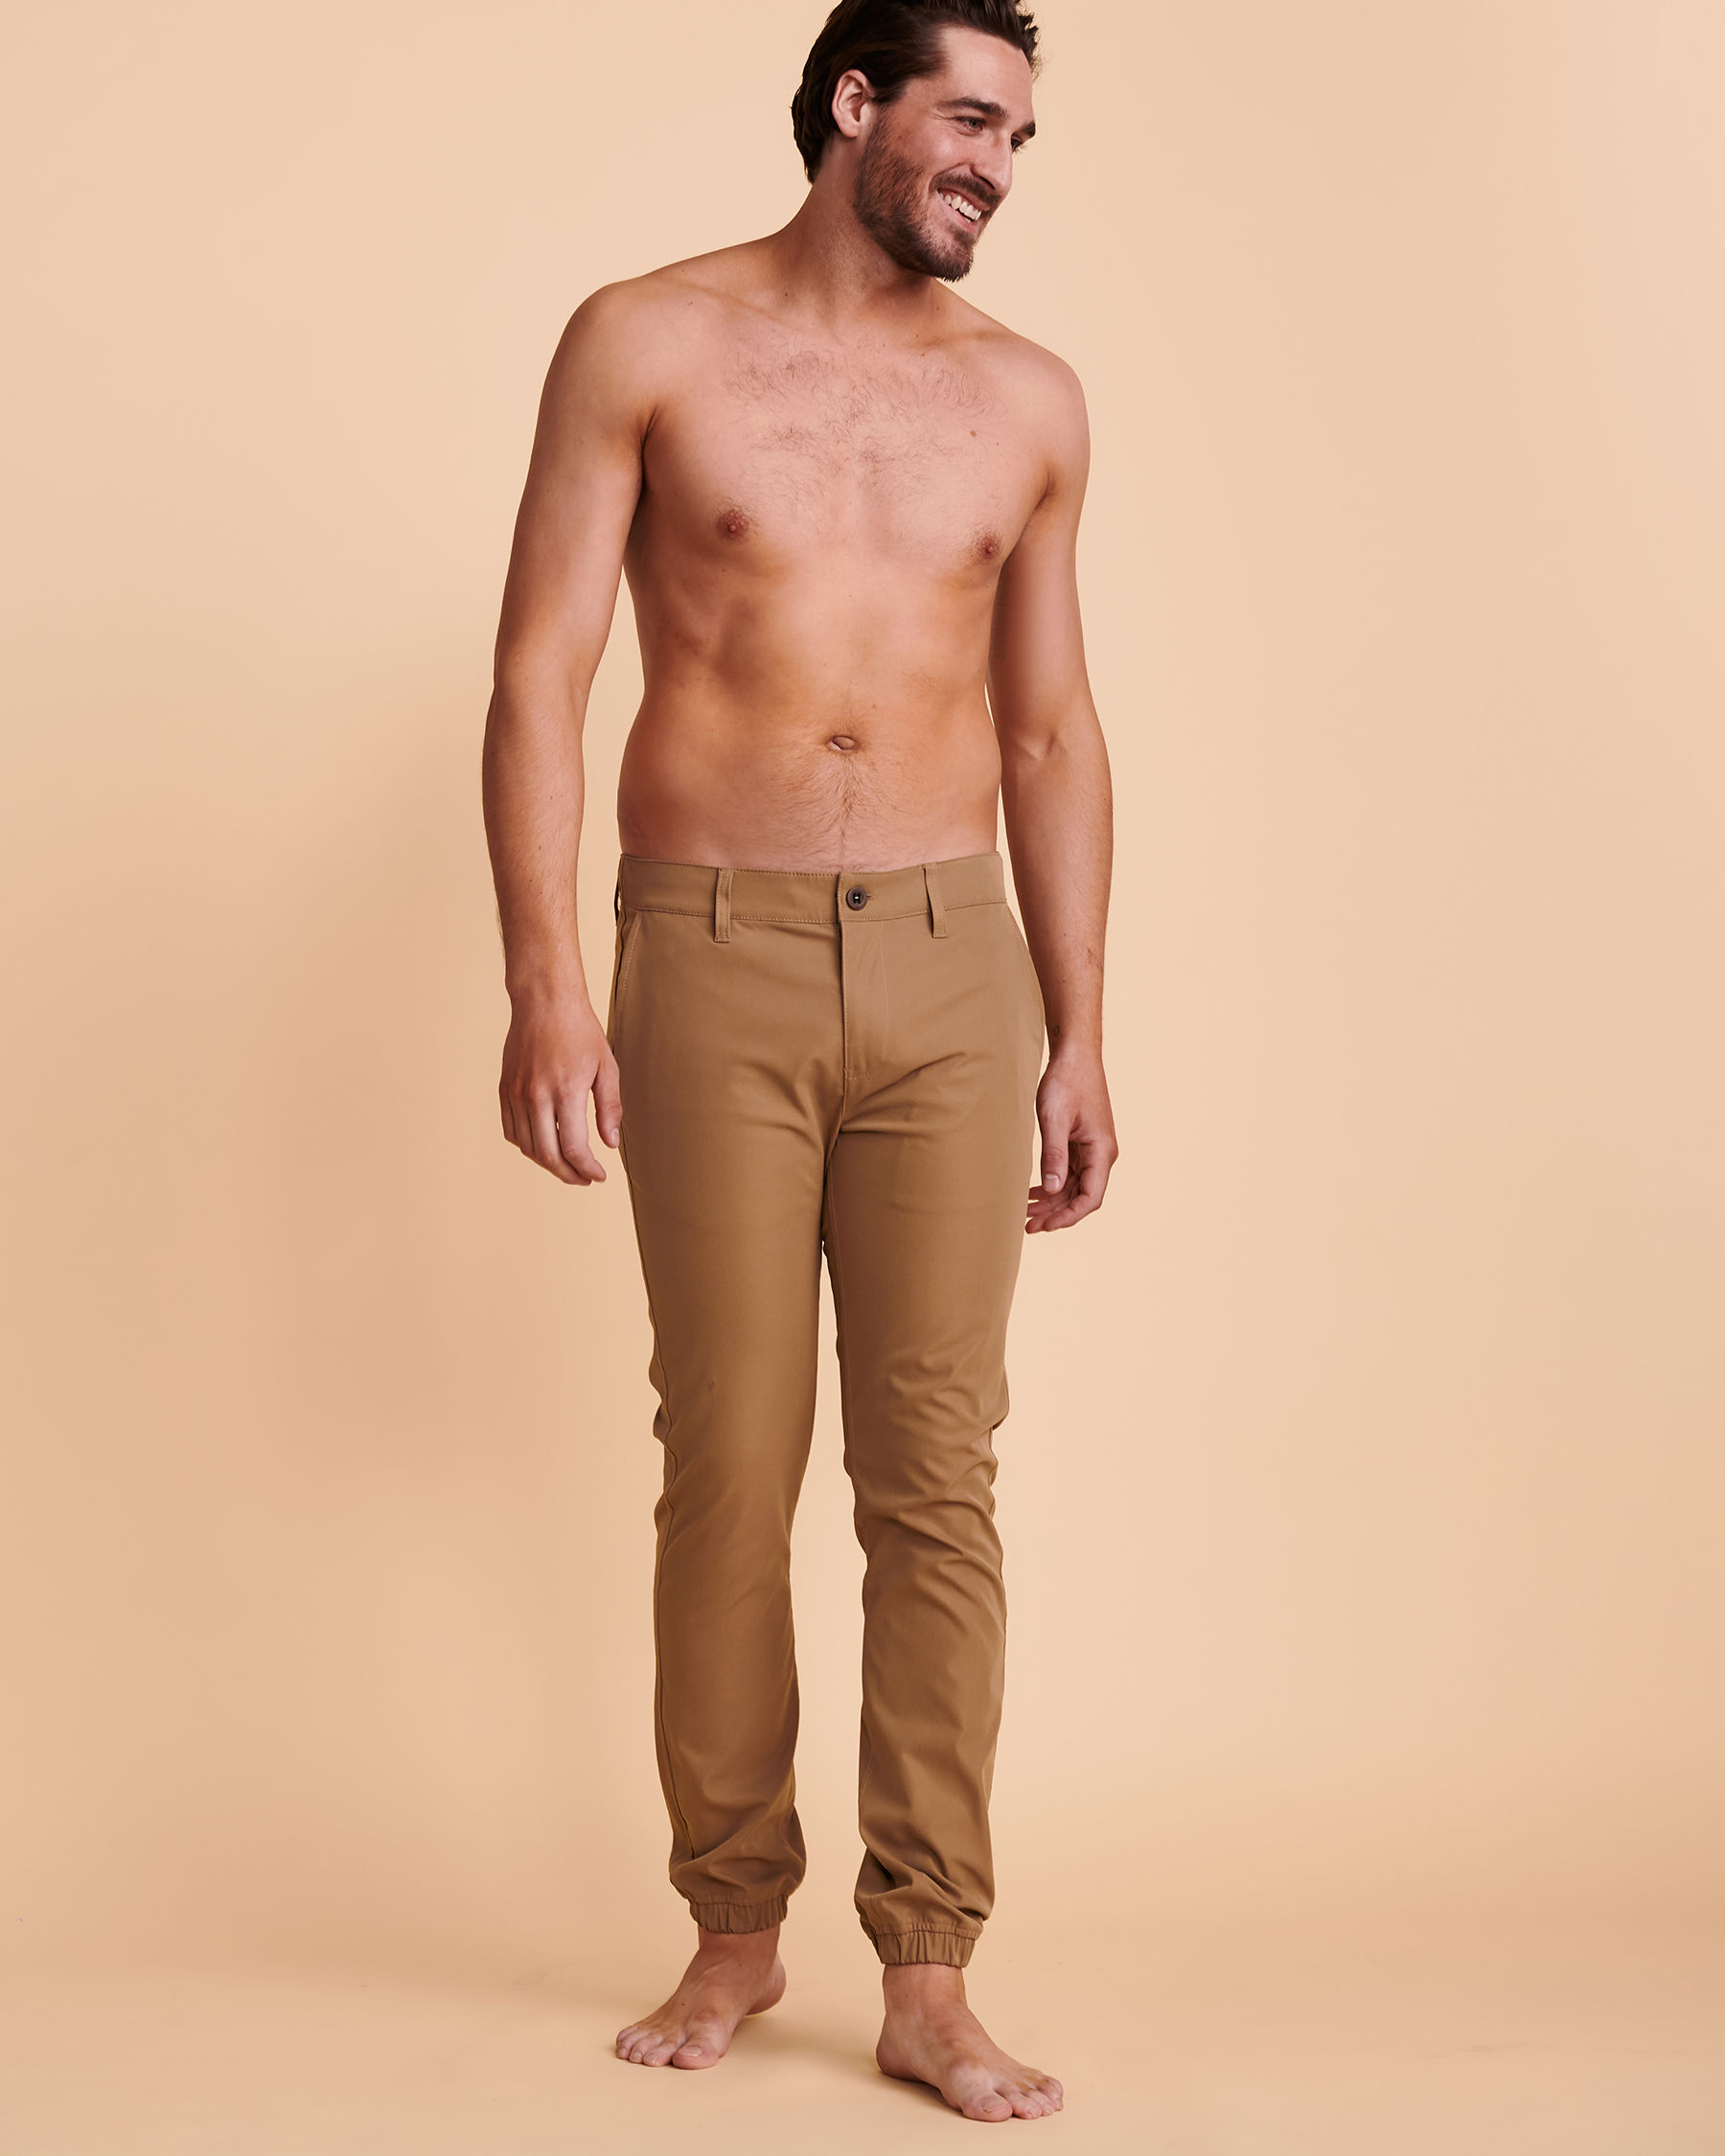 O'NEILL DONNIE Hybrid Pants Camel SP1109101C - View5